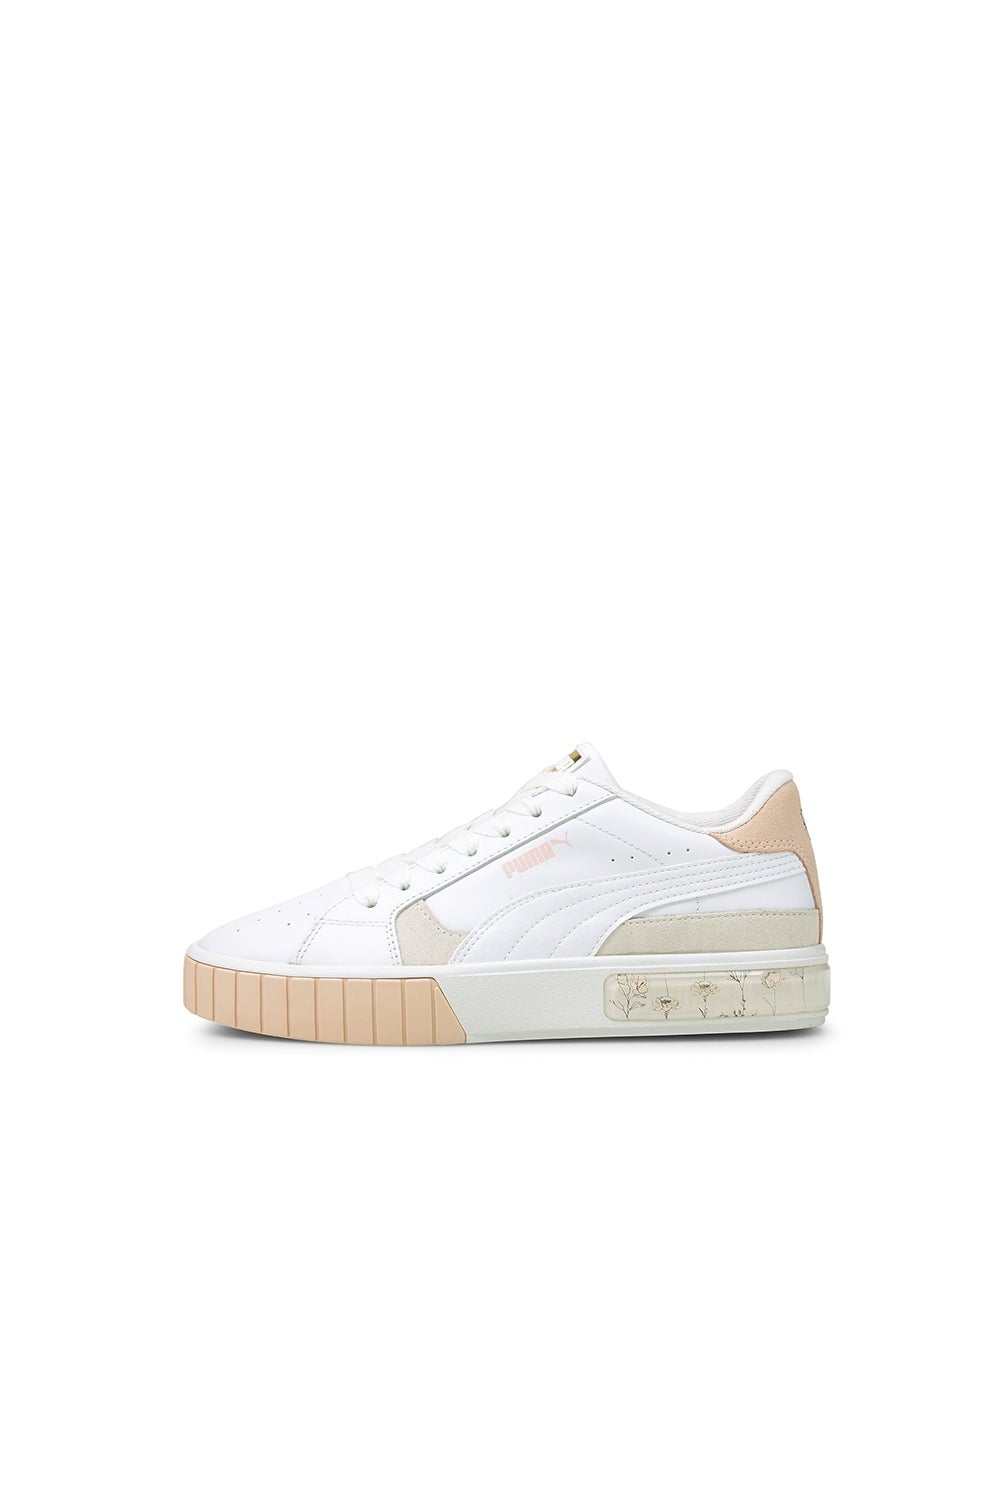 Puma Cali Star In Bloom White/Marshmallow/Cloud Pink